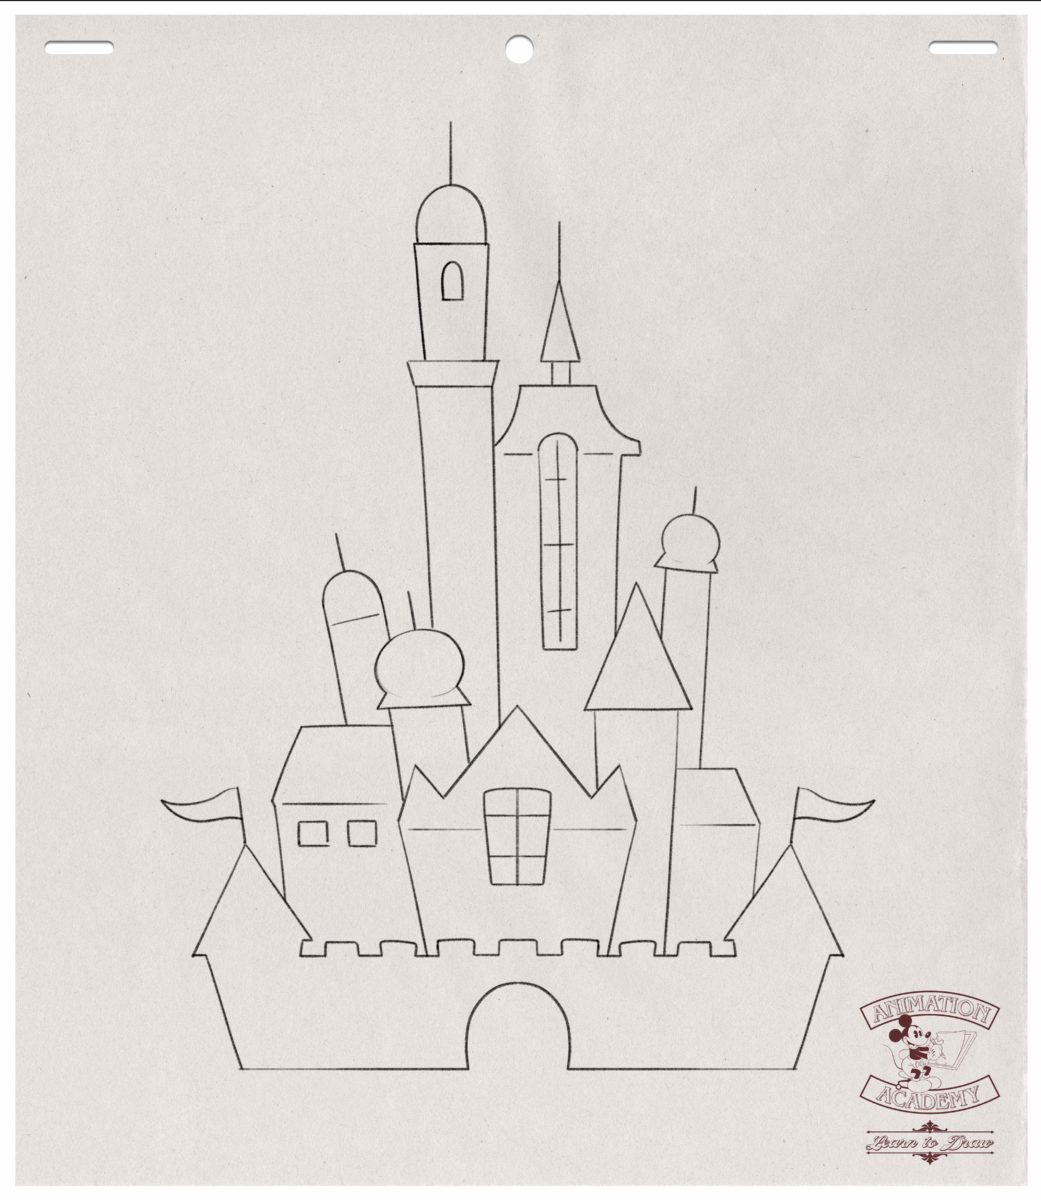 20201120_hkdl_15th-anniversary-launch-celebration_how-to-draw-a-disney-castle-1